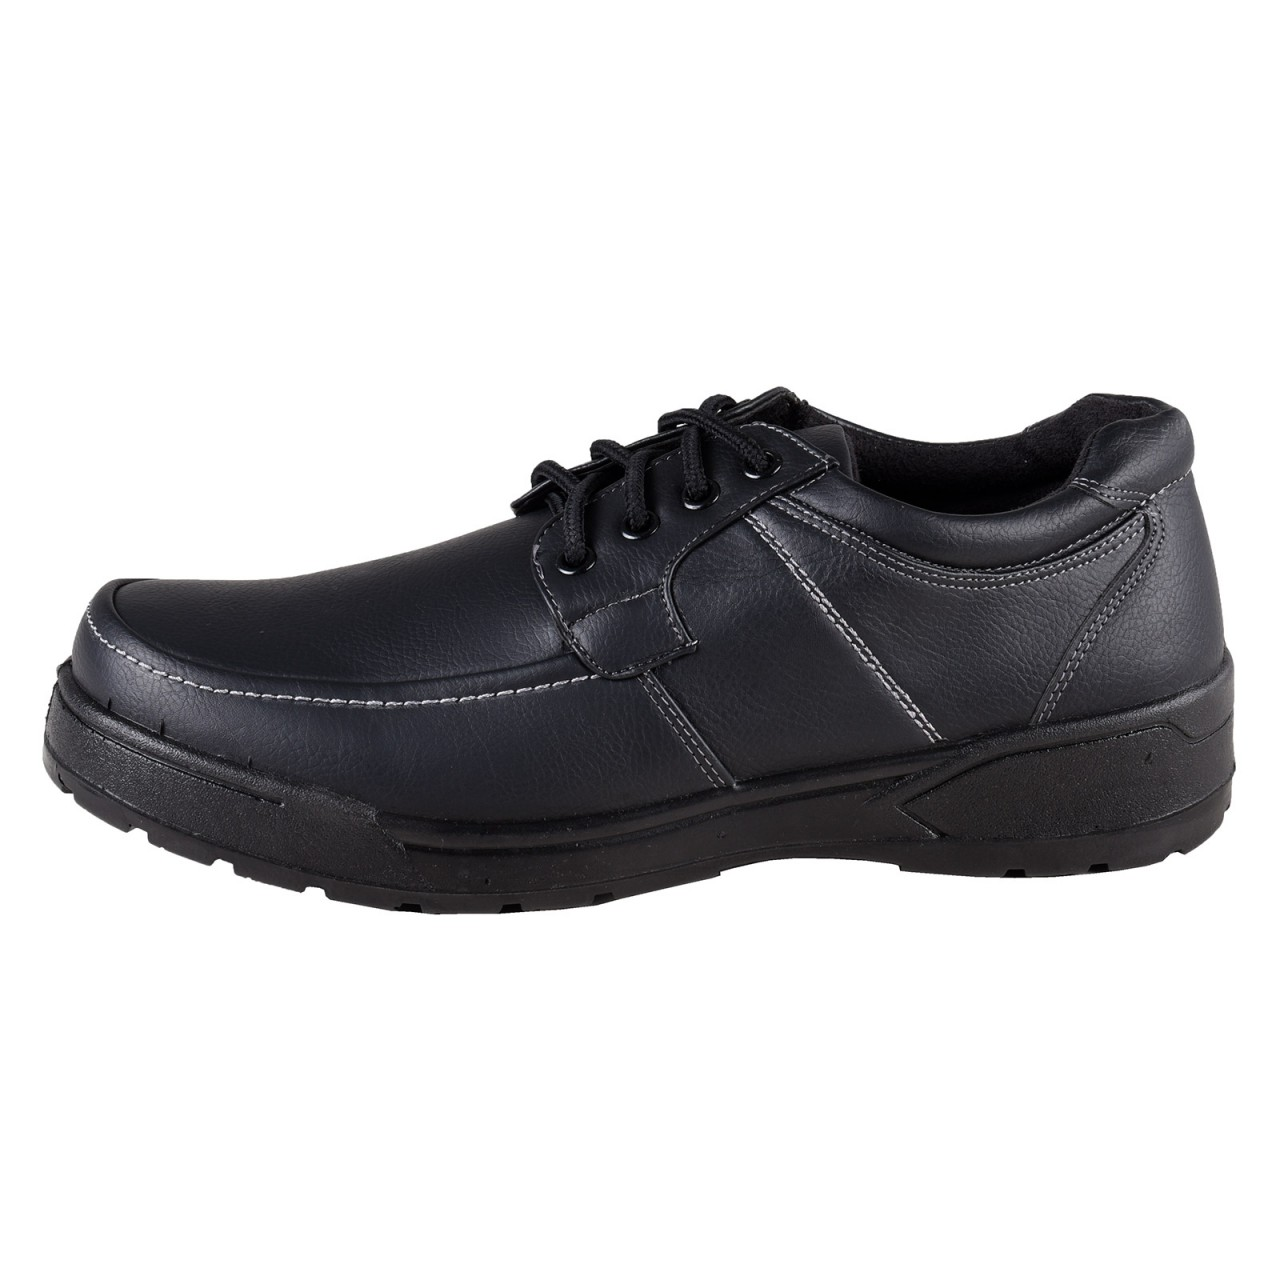 mario bucelli comfortable shoes lace up black